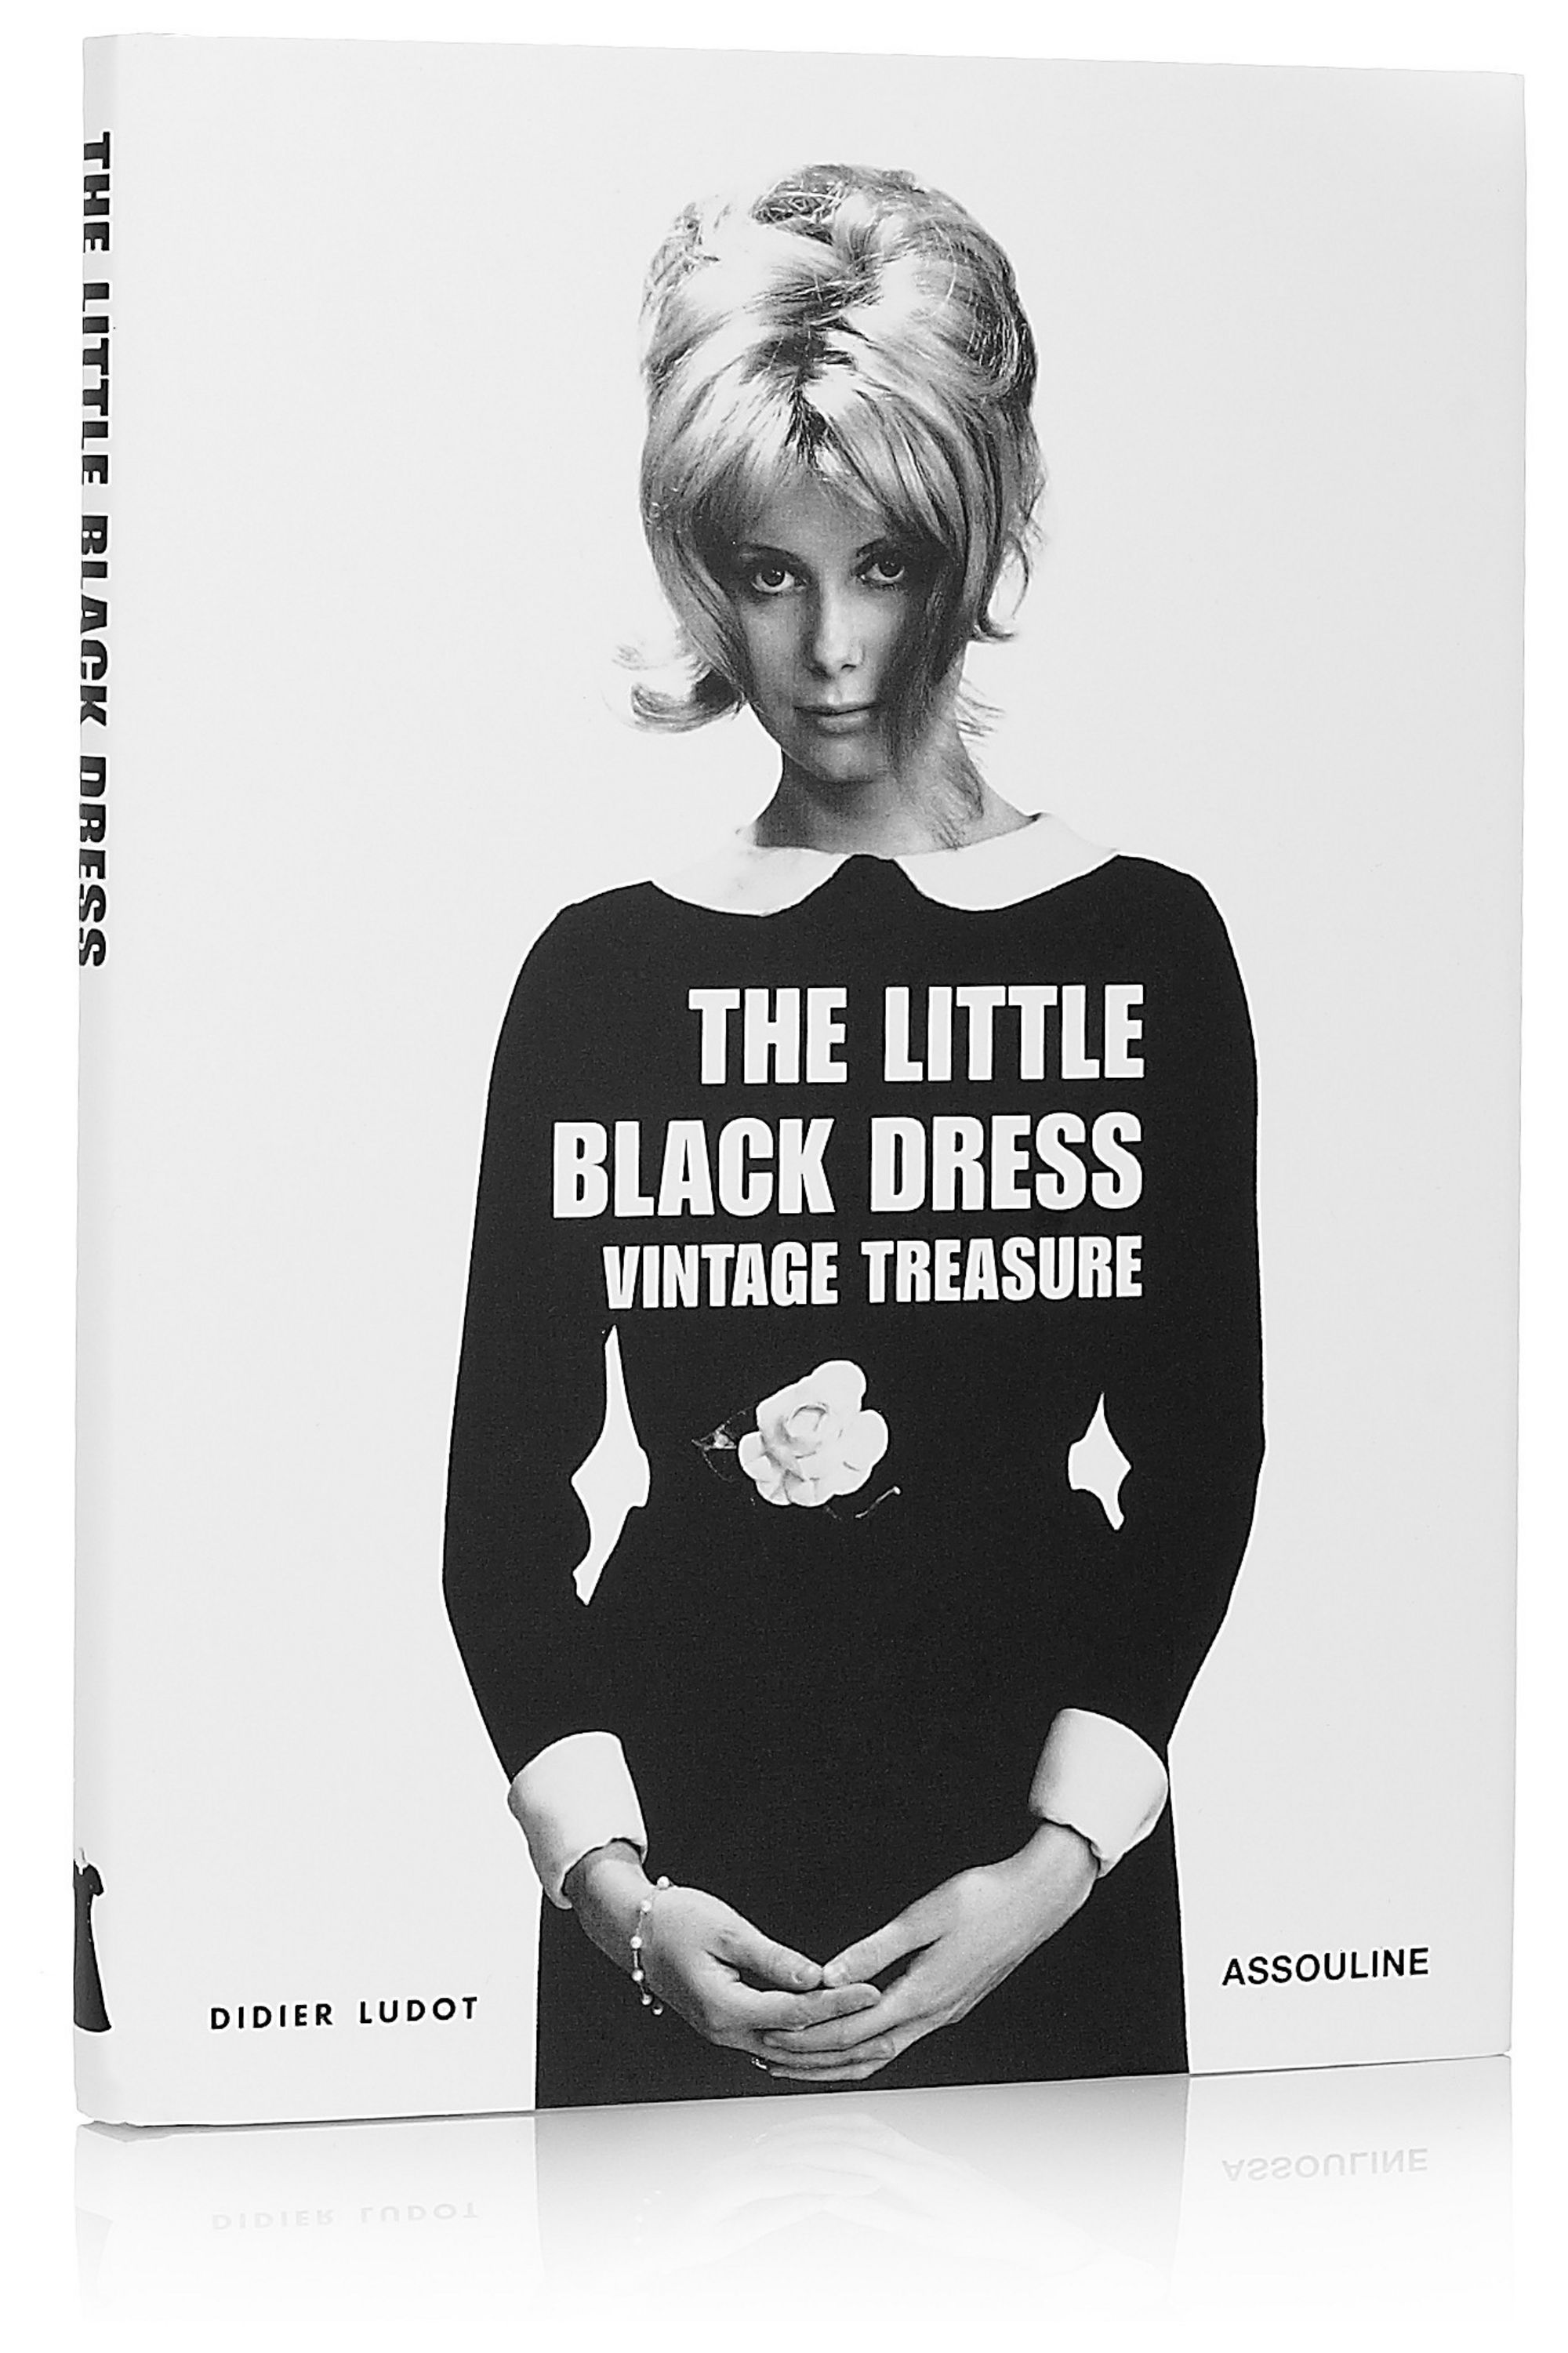 White Little Black Dress By Didier Ludot Hardcover Book Assouline Net A Porter